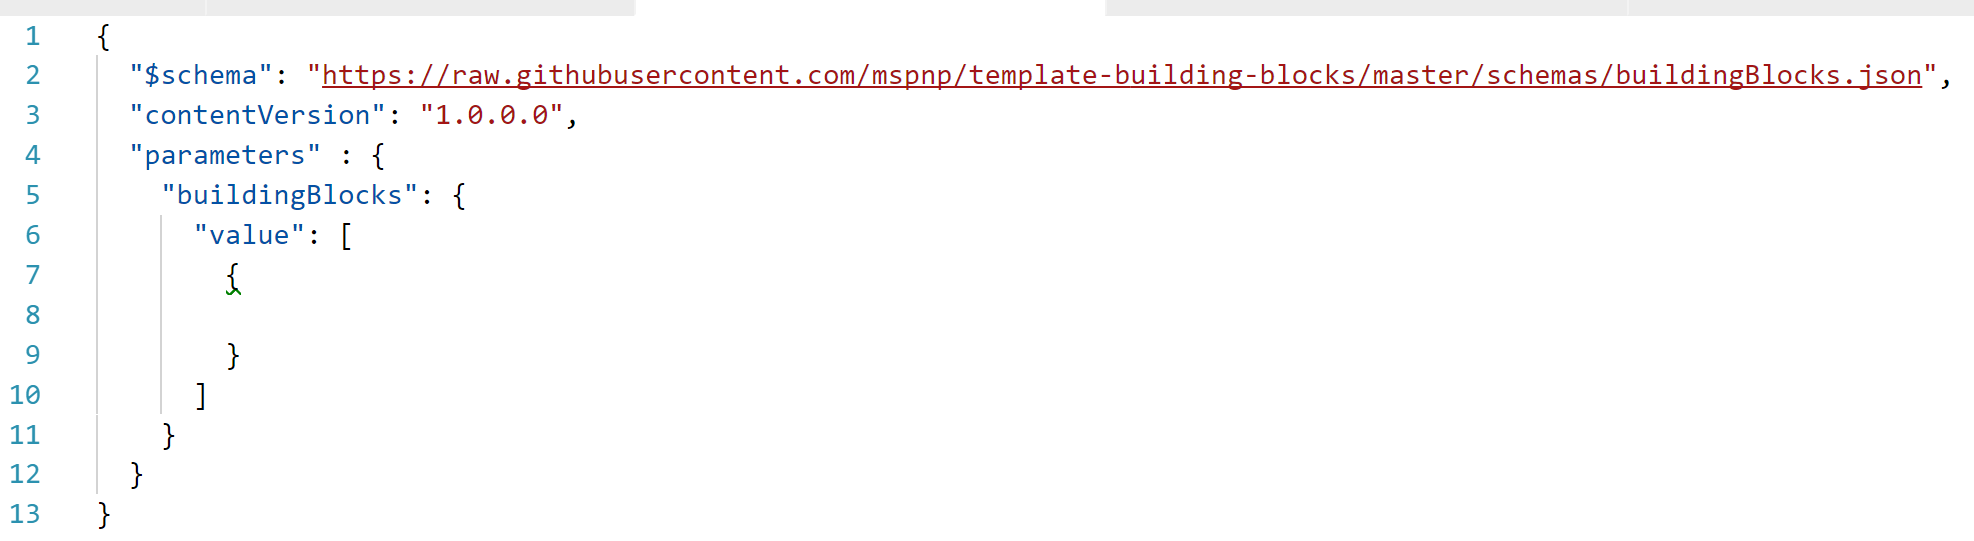 Azure Building Blocks - Blank Template